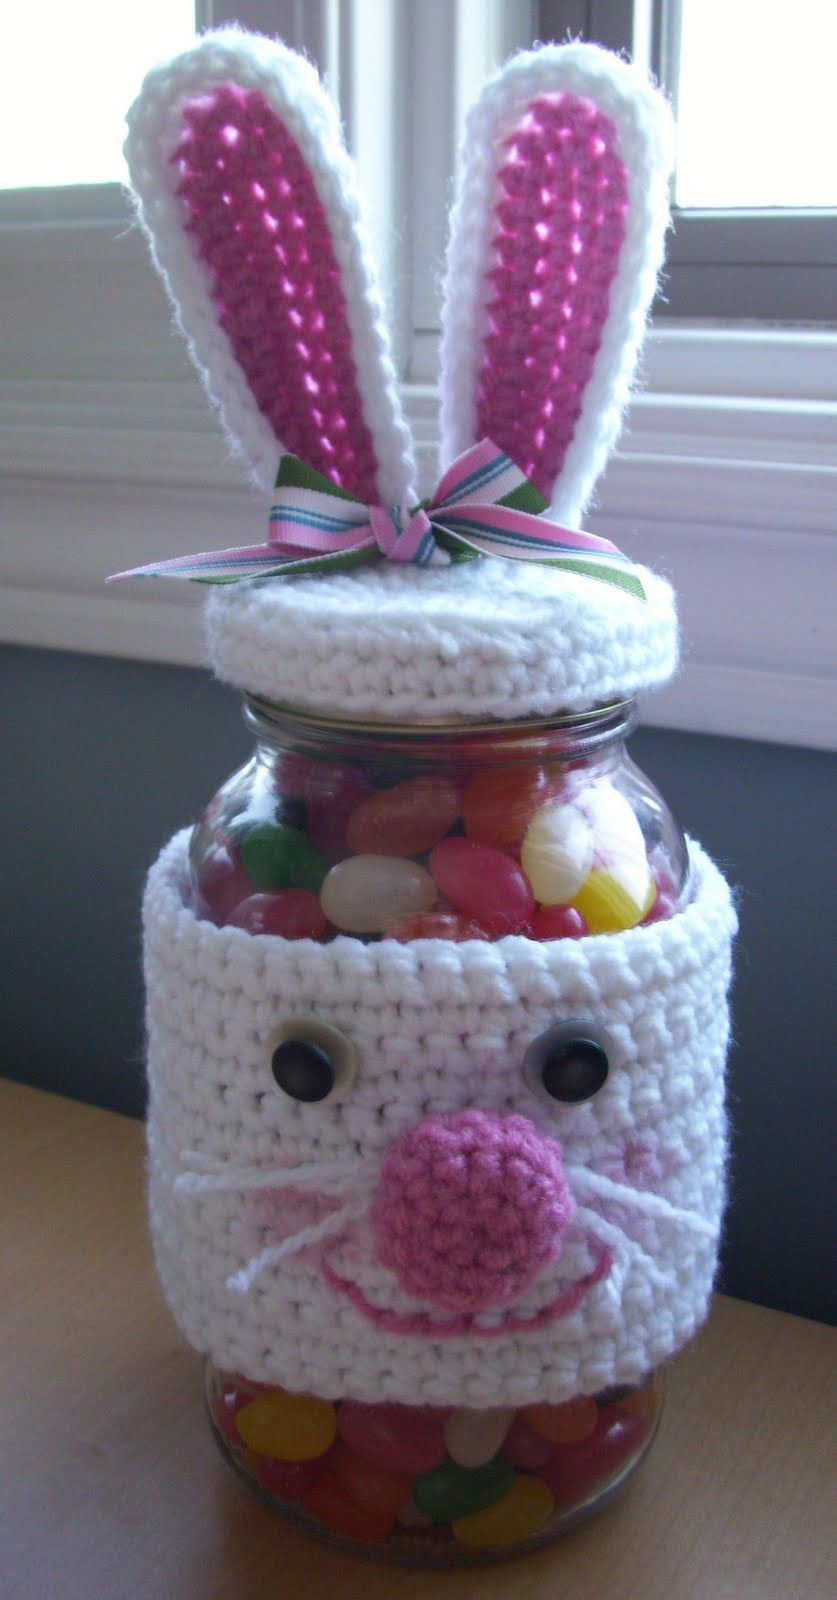 Gift jar decorations pattern for 6 hl cute easter gift jar decorations pattern for 6 hl cute negle Gallery